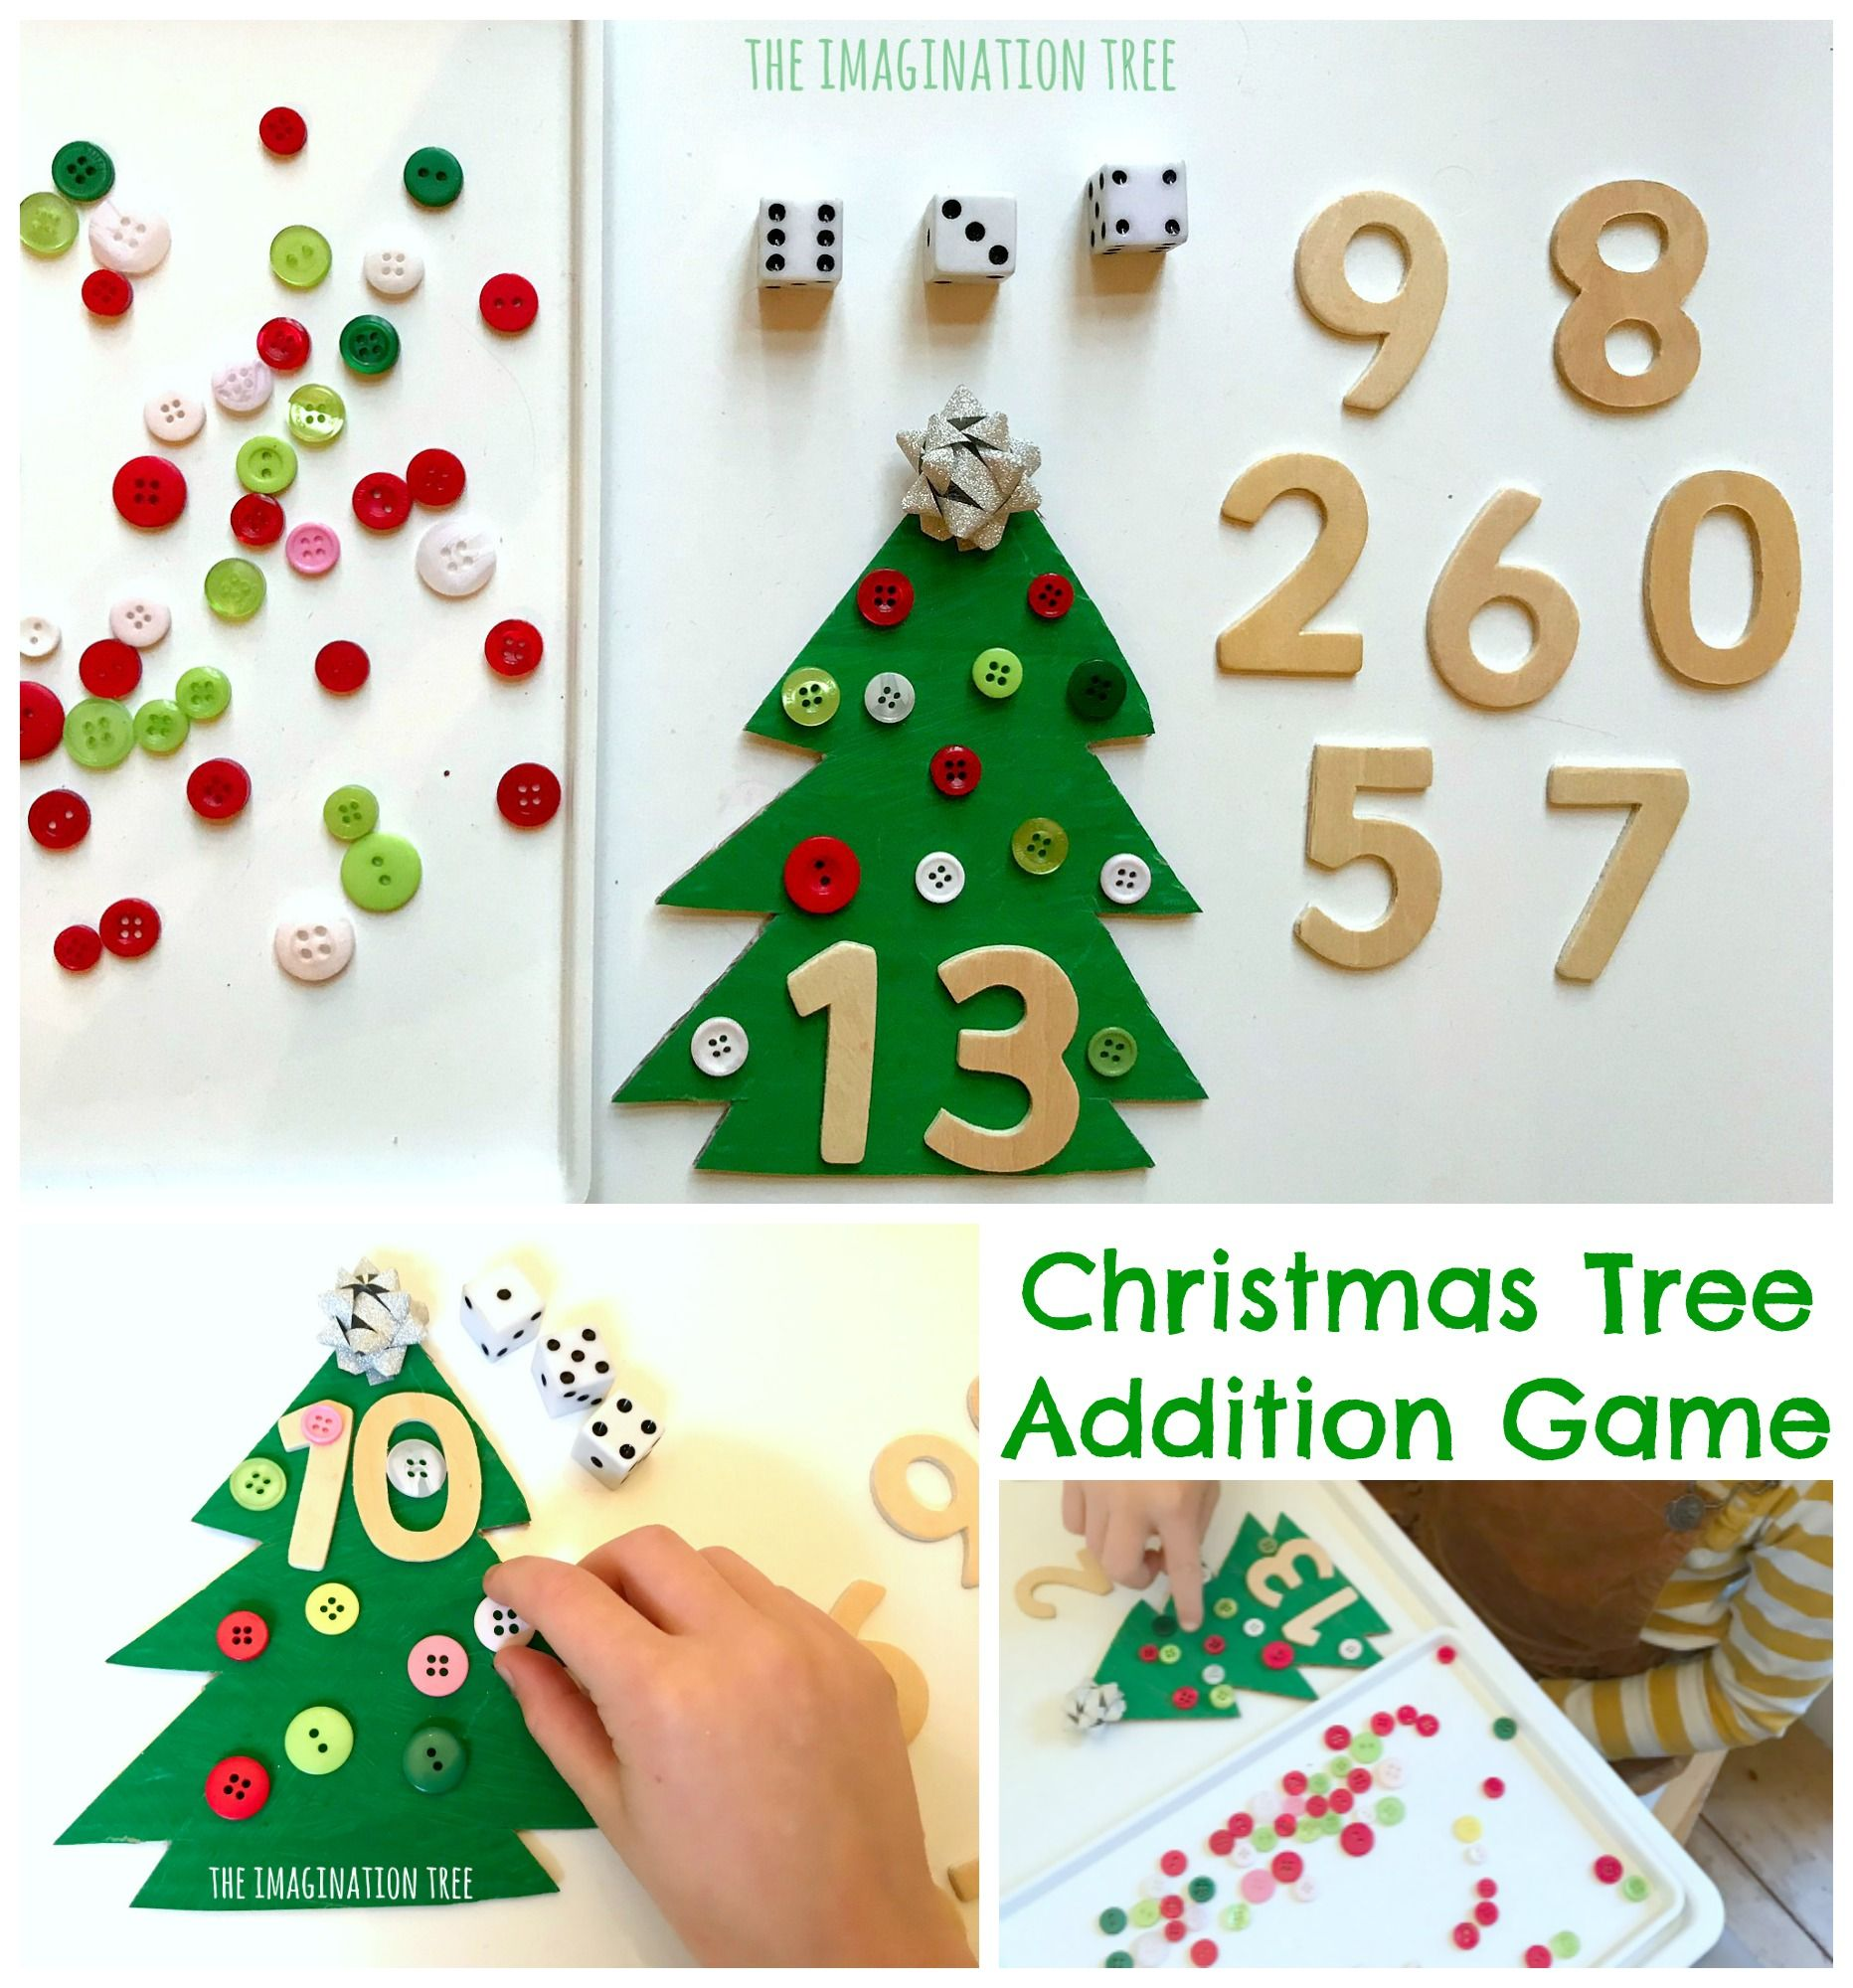 Christmas Tree Addition Game The Imagination Tree Christmas Addition Imagination Tree Addition Games